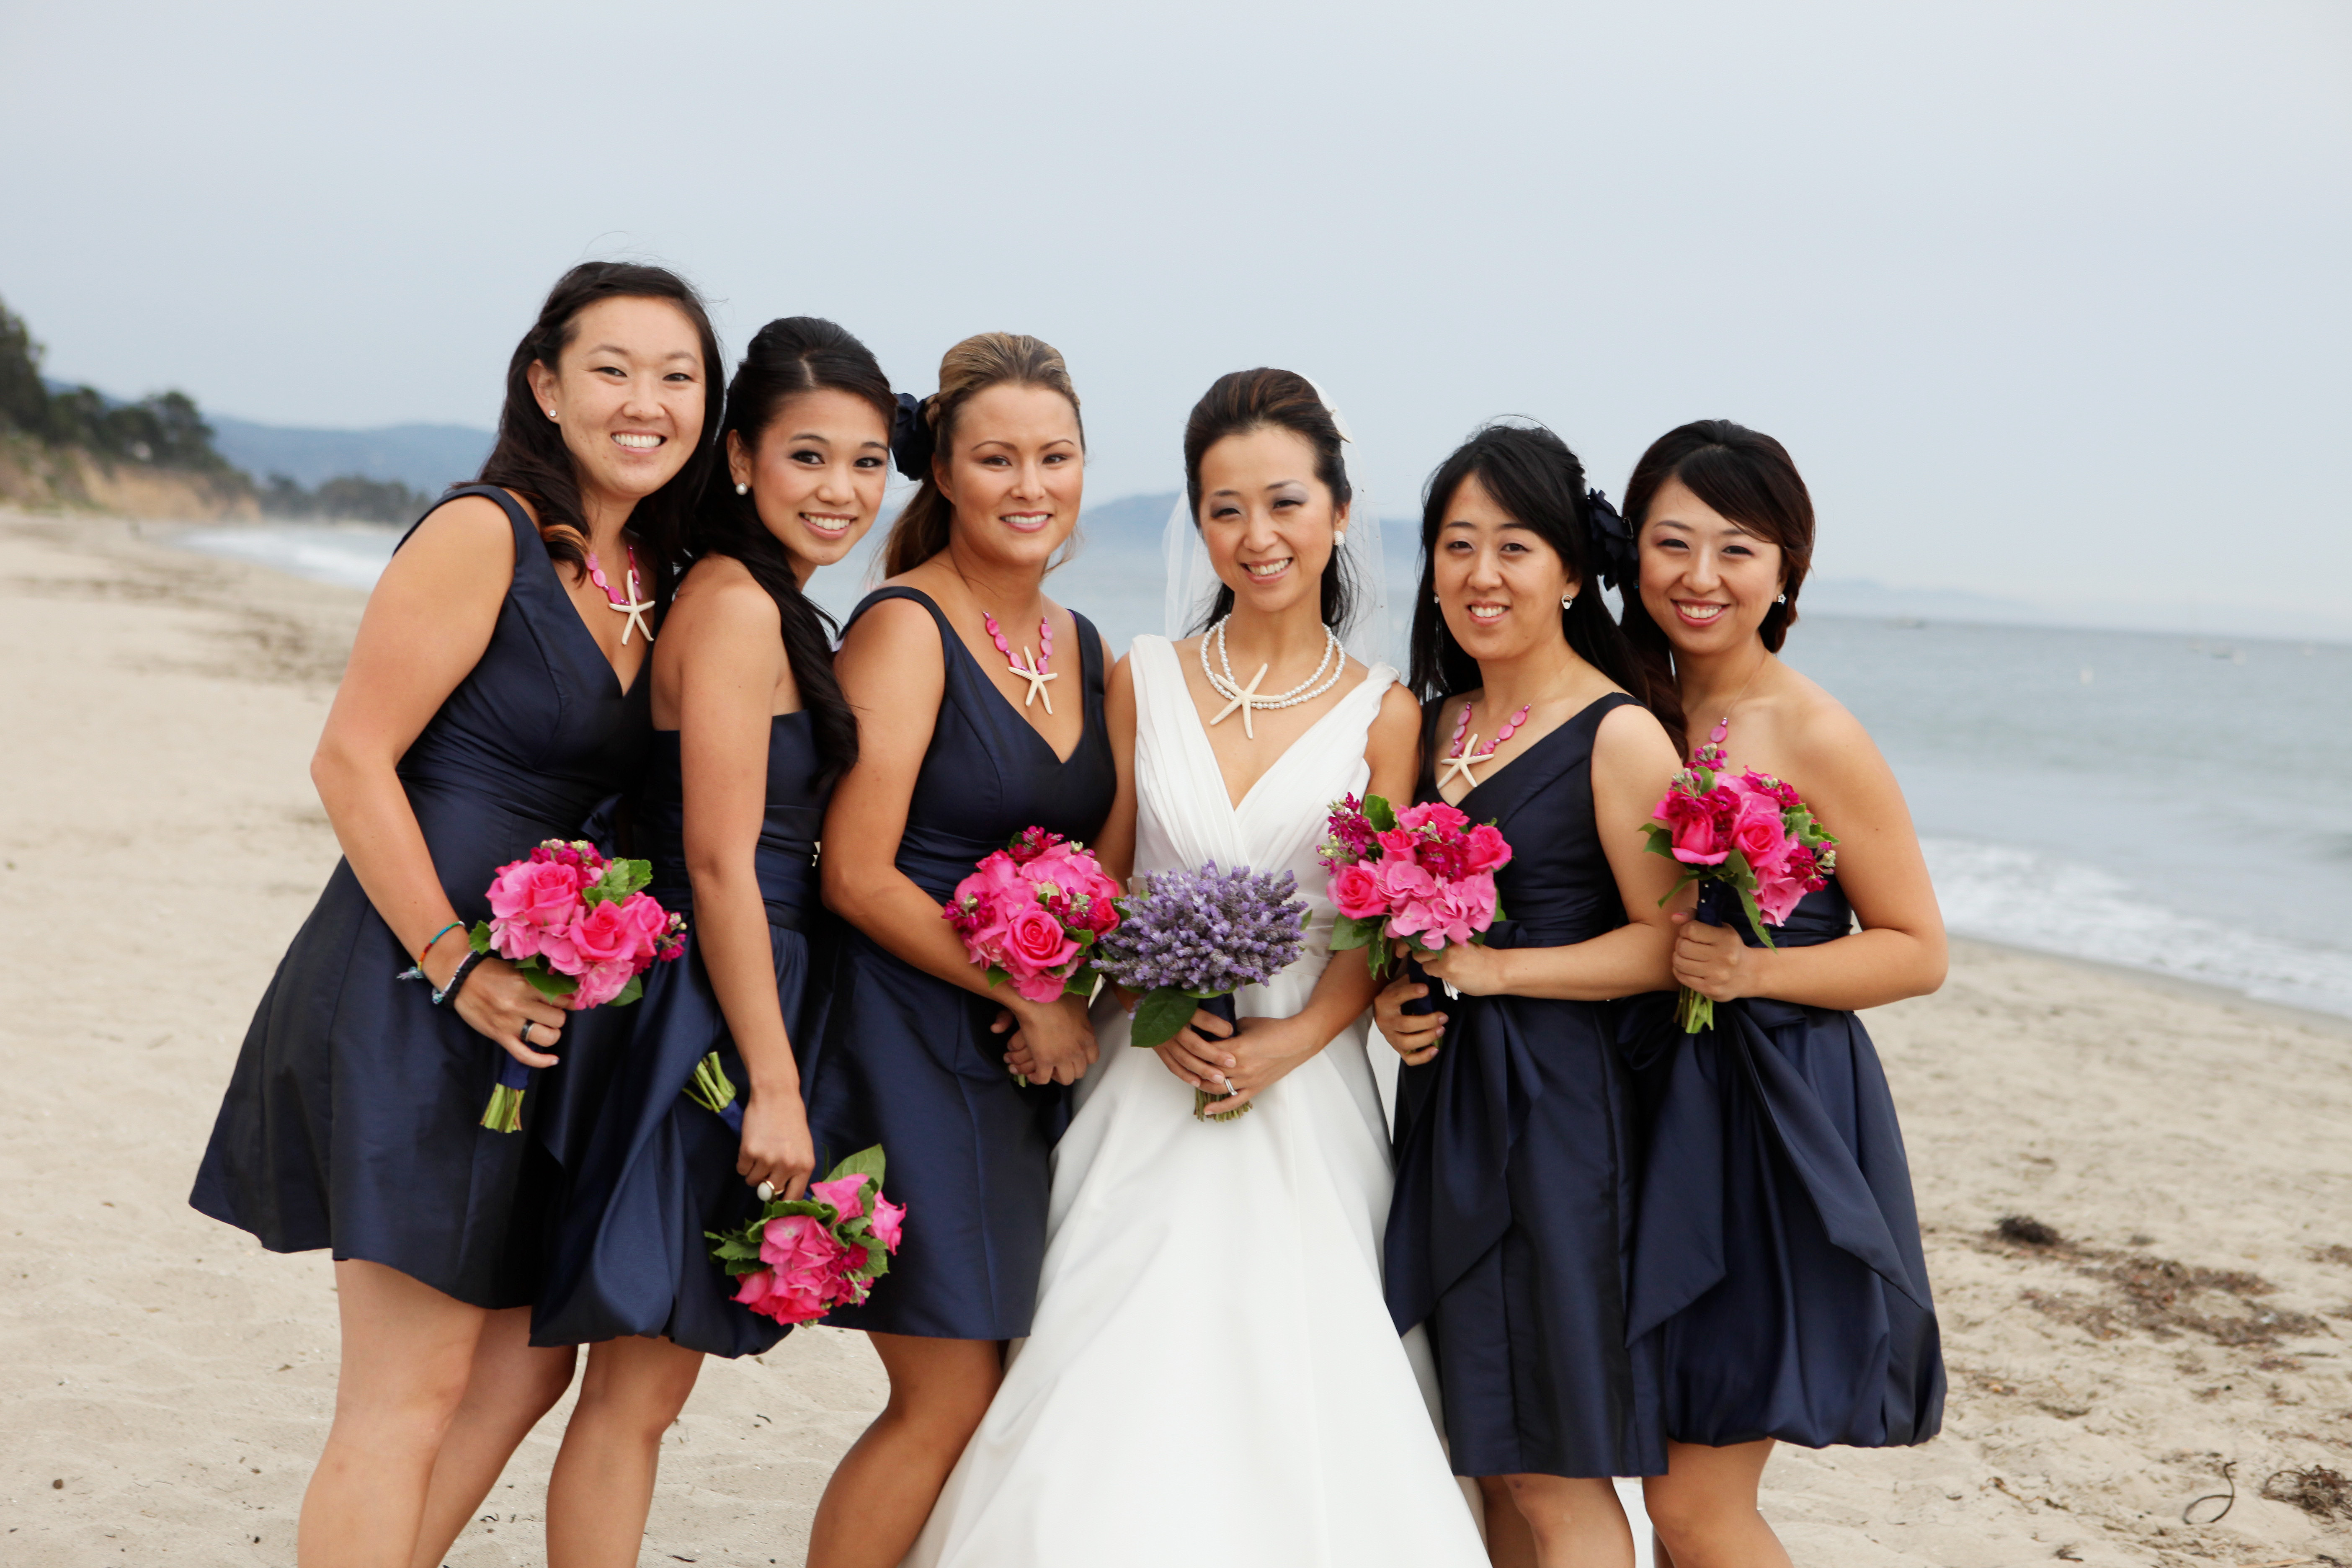 Flowers & Decor, Bridesmaids, Bridesmaids Dresses, Beach Wedding Dresses, Fashion, pink, purple, blue, Beach, Bridesmaid Bouquets, Flowers, Beach Wedding Flowers & Decor, santa, Barbara, Ashley bartoletti photography, Flower Wedding Dresses